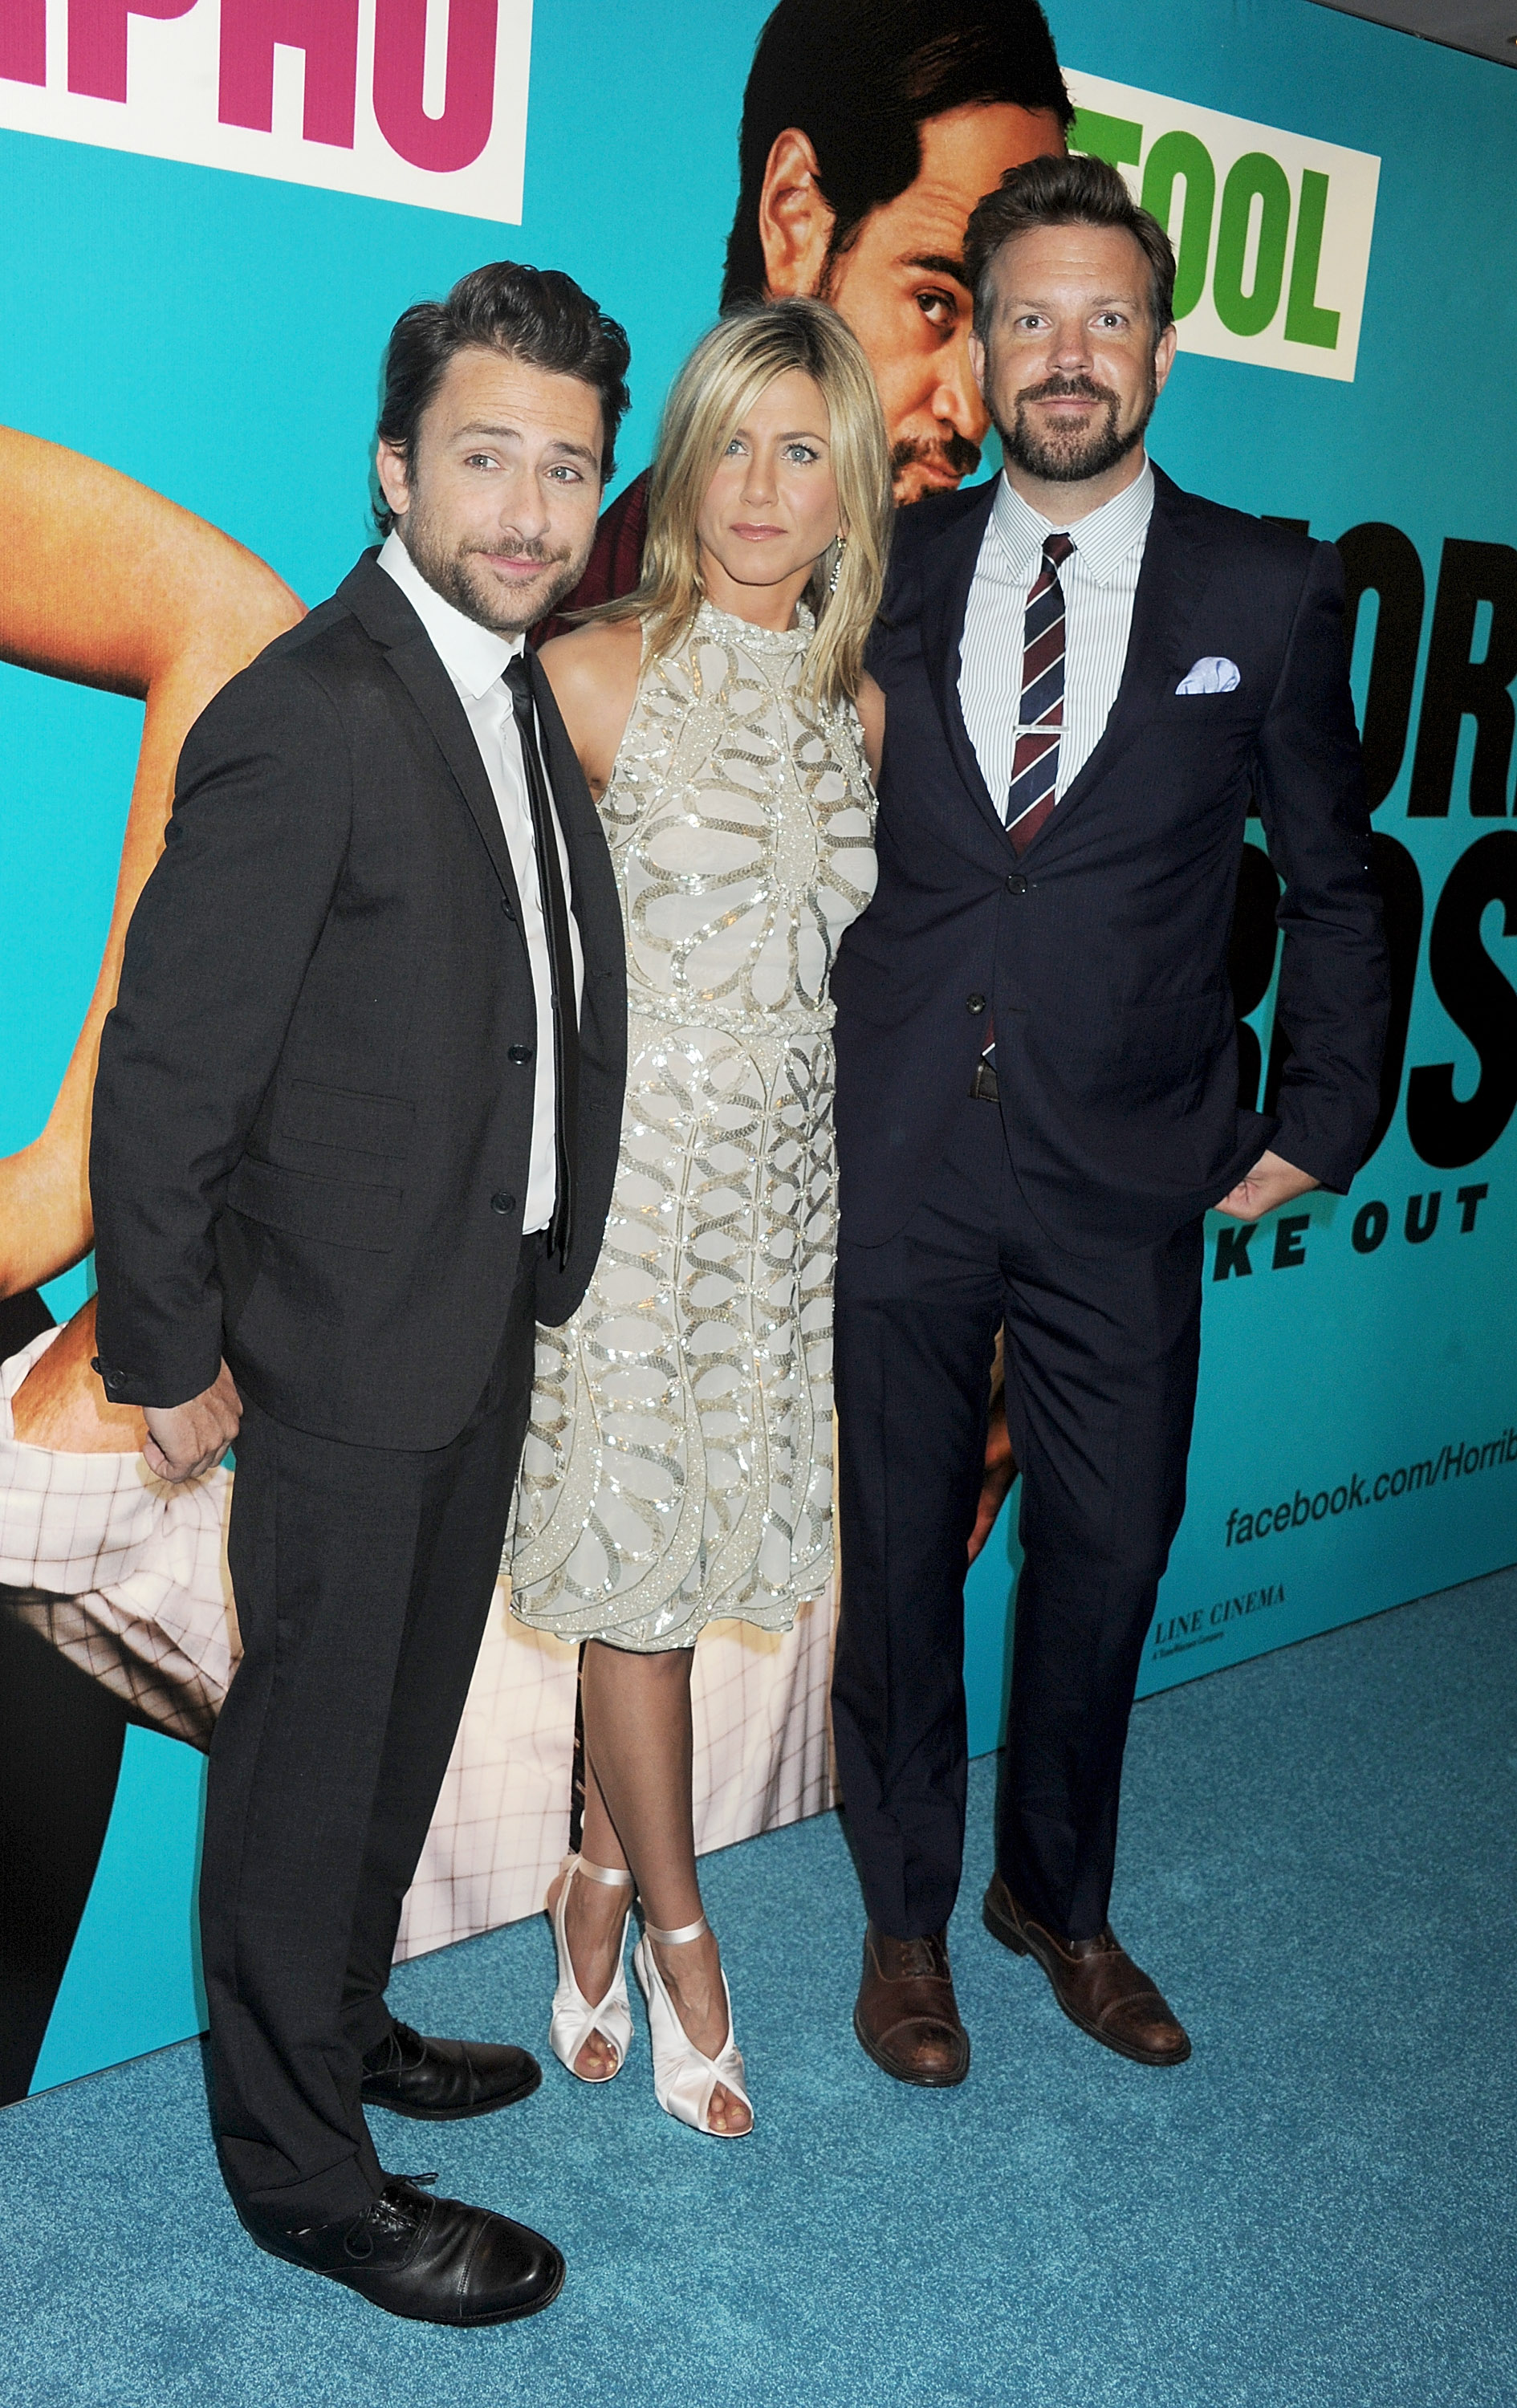 Charlie Day, Jennifer Aniston, and Jason Sudeikis pose together.